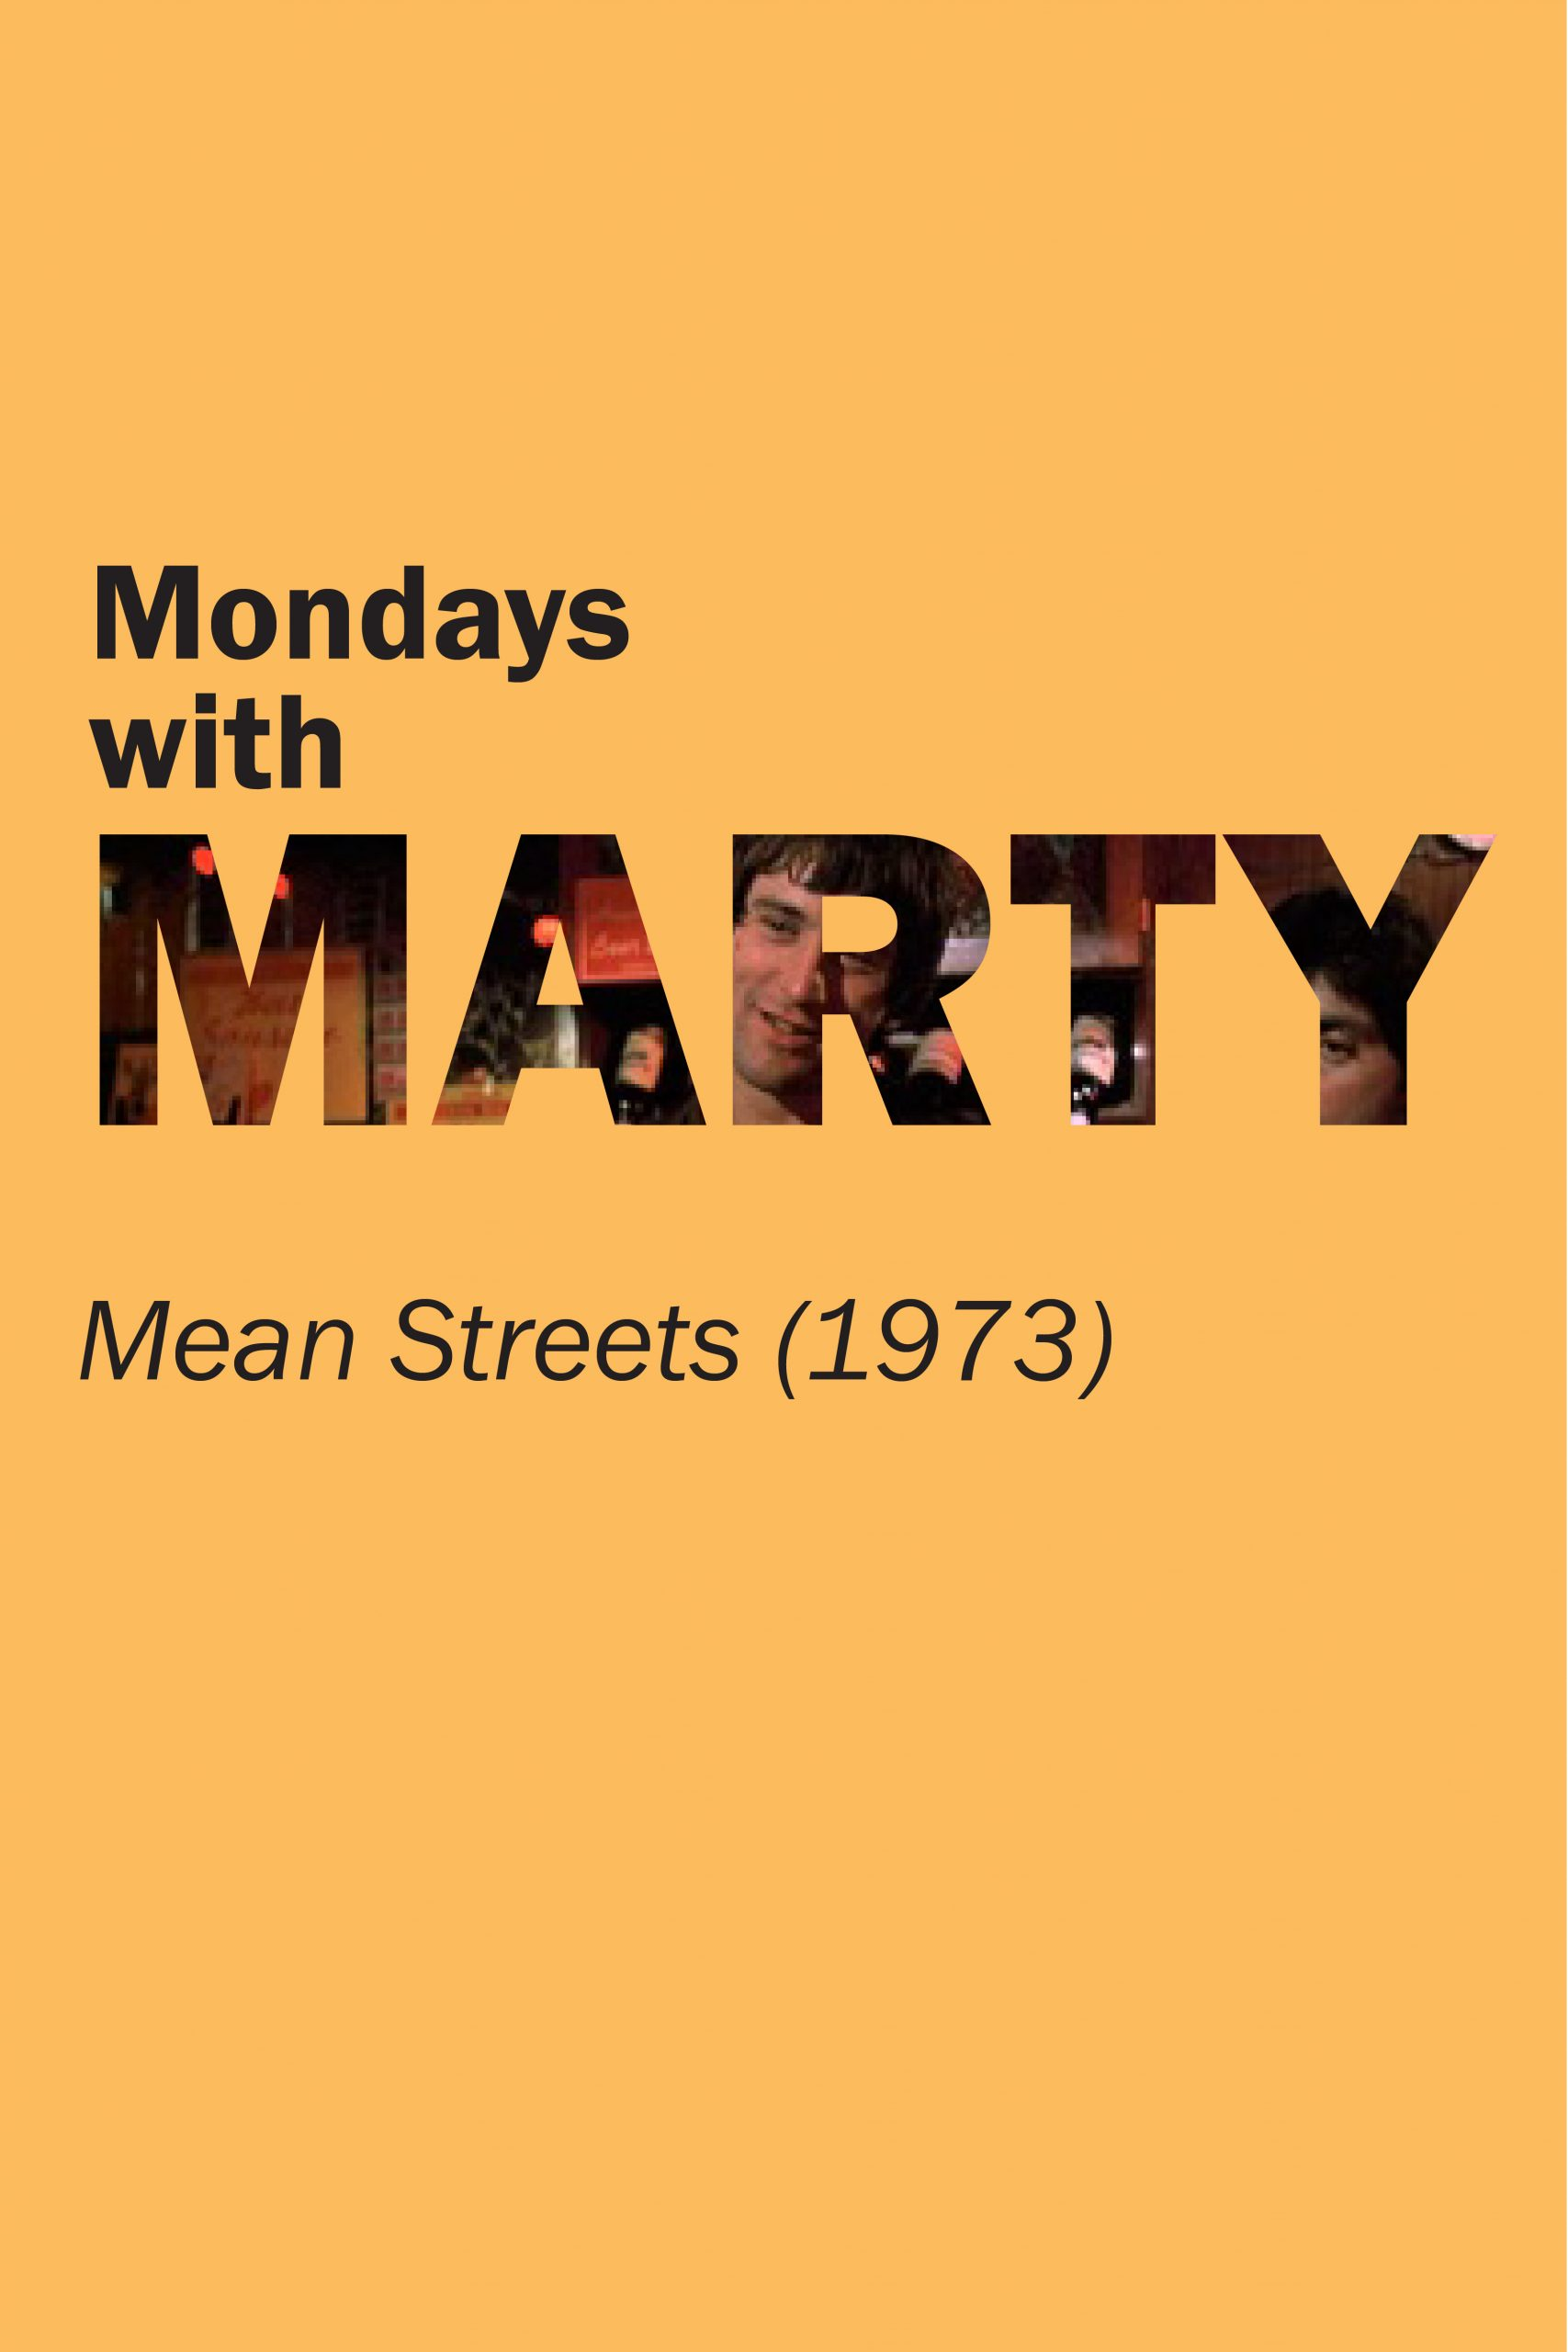 Poster for Mean Streets (1973)